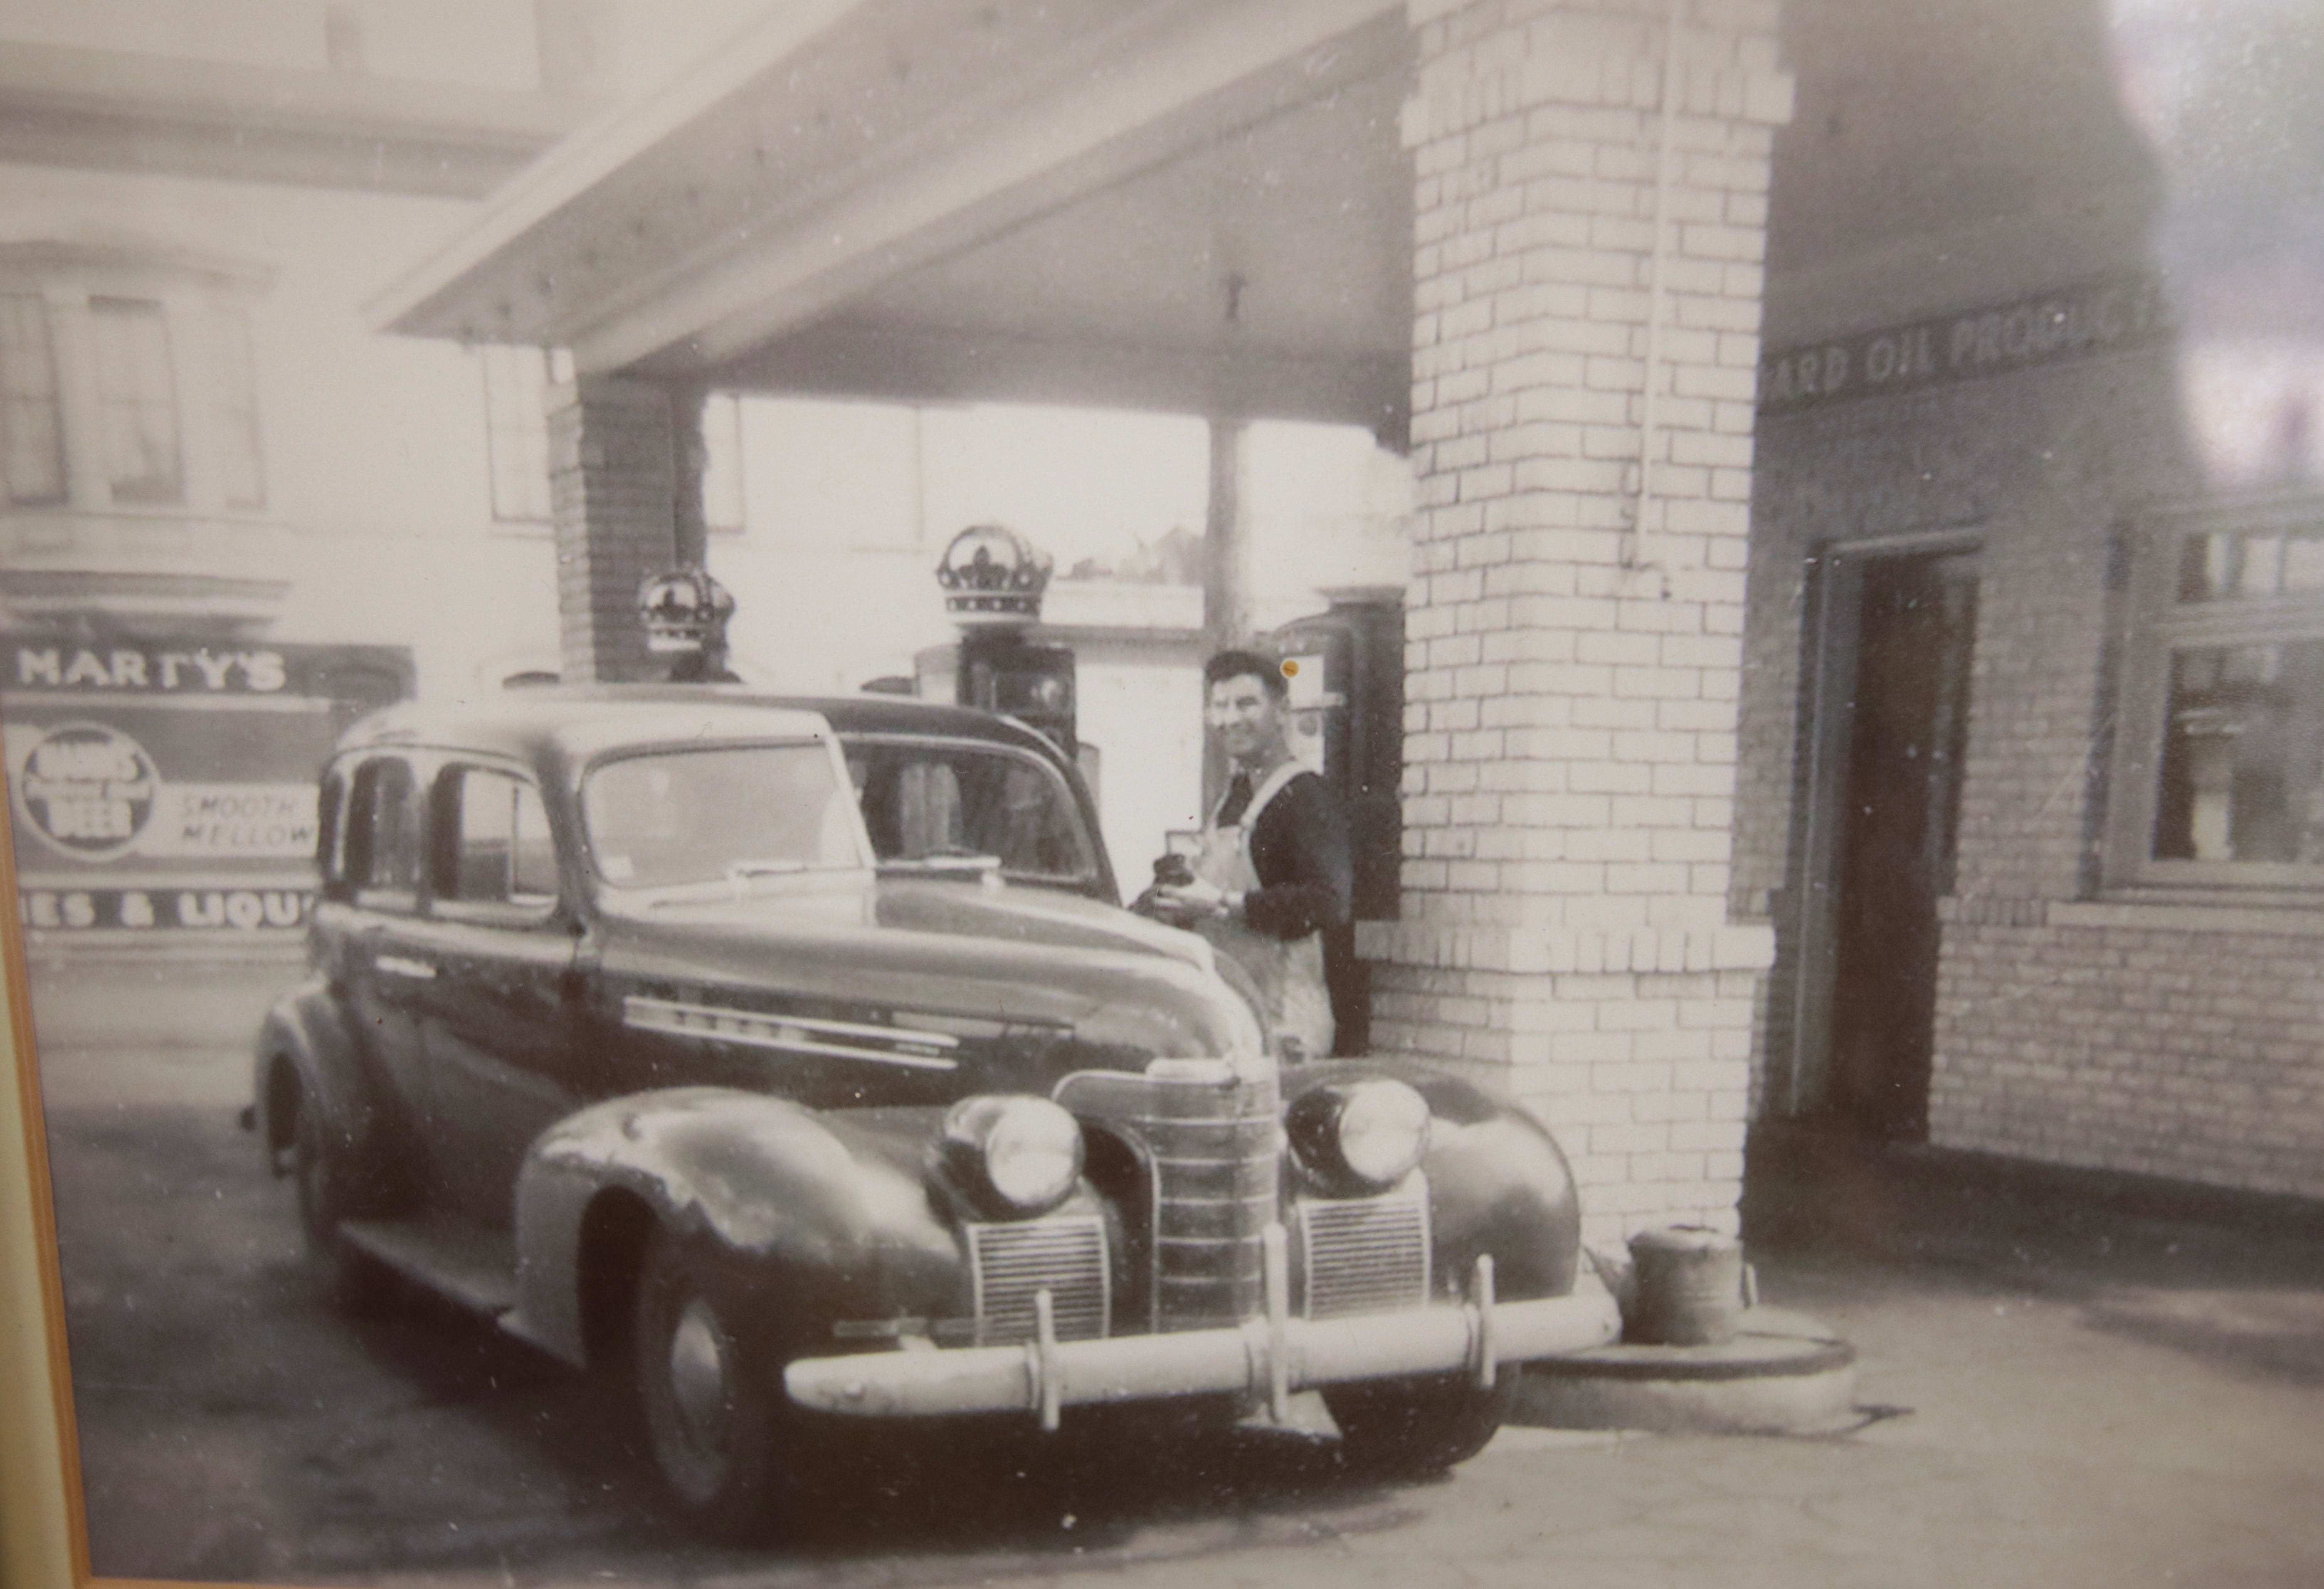 This shot of the Standard Oil gas station, later Glasgow Automotive, at 740 West University is displayed on an office wall. In the background you can see the Marty's Bar sign on the exterior wall of the establishment.